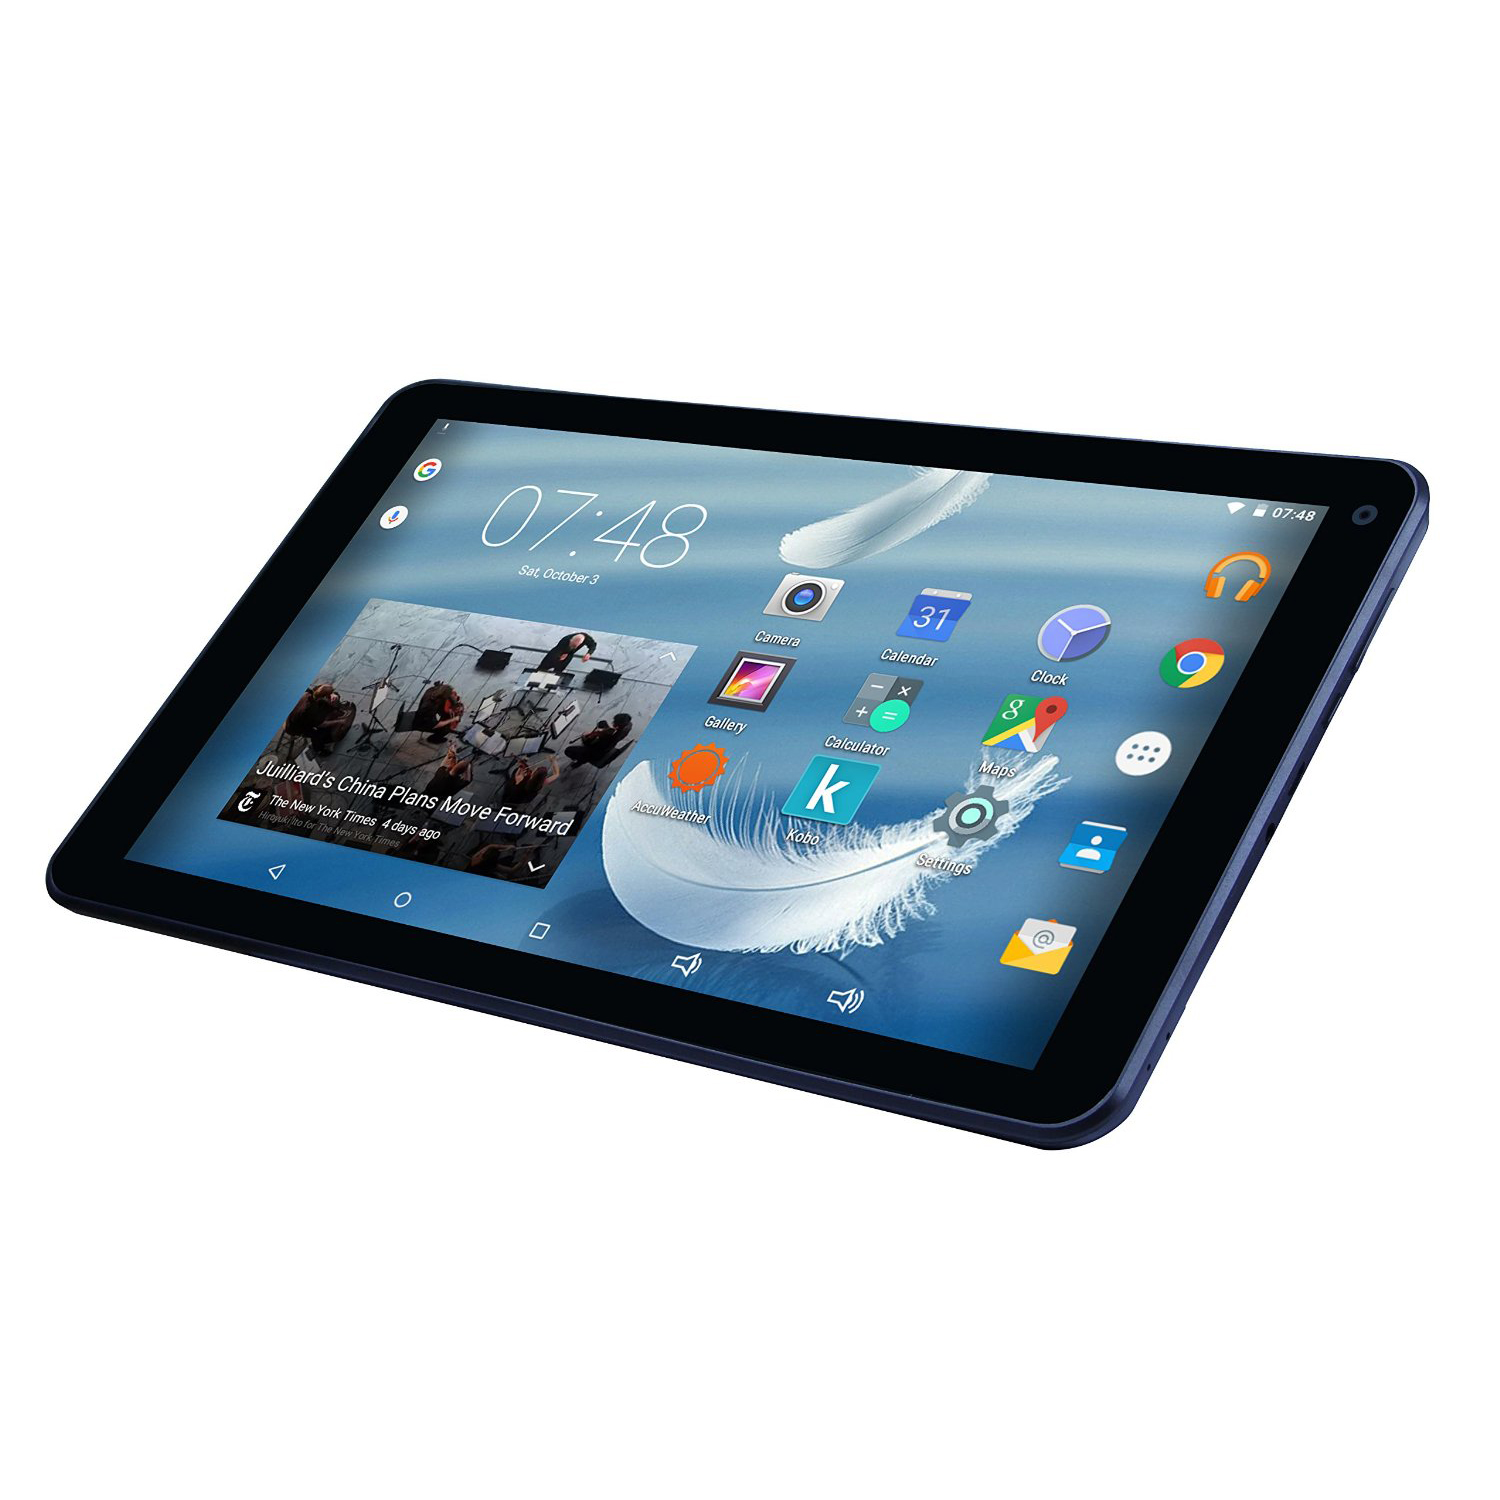 "Skytex SP1026 16GB 10.1"" Touchscreen Dual Camera WiFi Bluetooth Android Tablet"